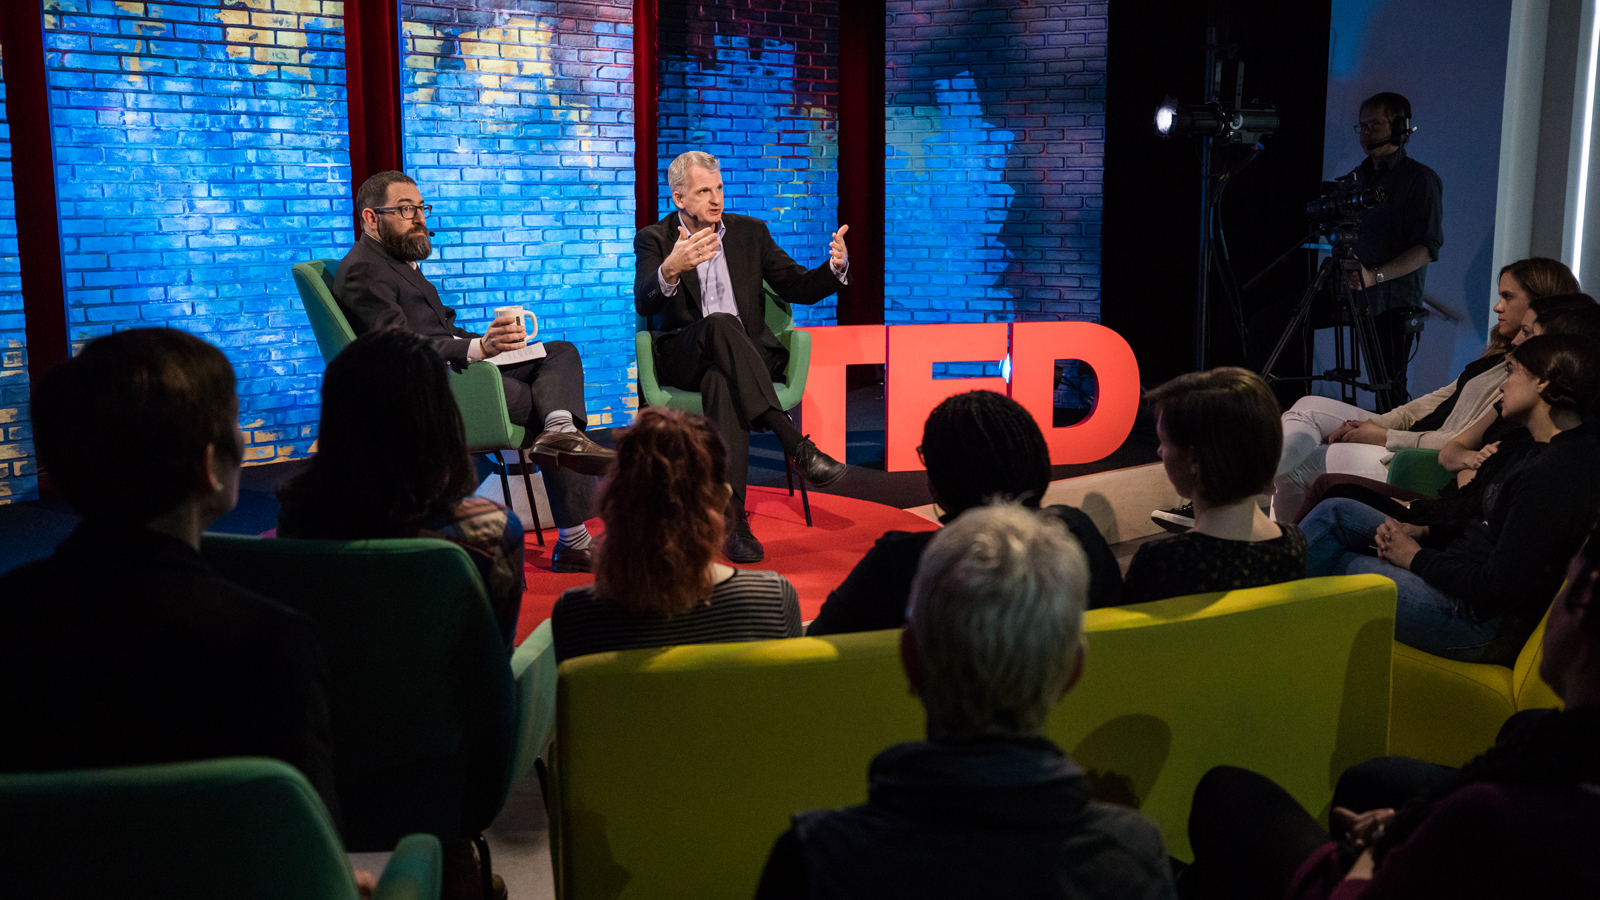 """Can we learn something from the past that helps us see more in the present?"" asks Timothy Snyder, right, onstage with historian Rick Perlstein, during TED Dialogues. February 23, 2017, at TED's offices in New York. Photo: Dian Lofton / TED"